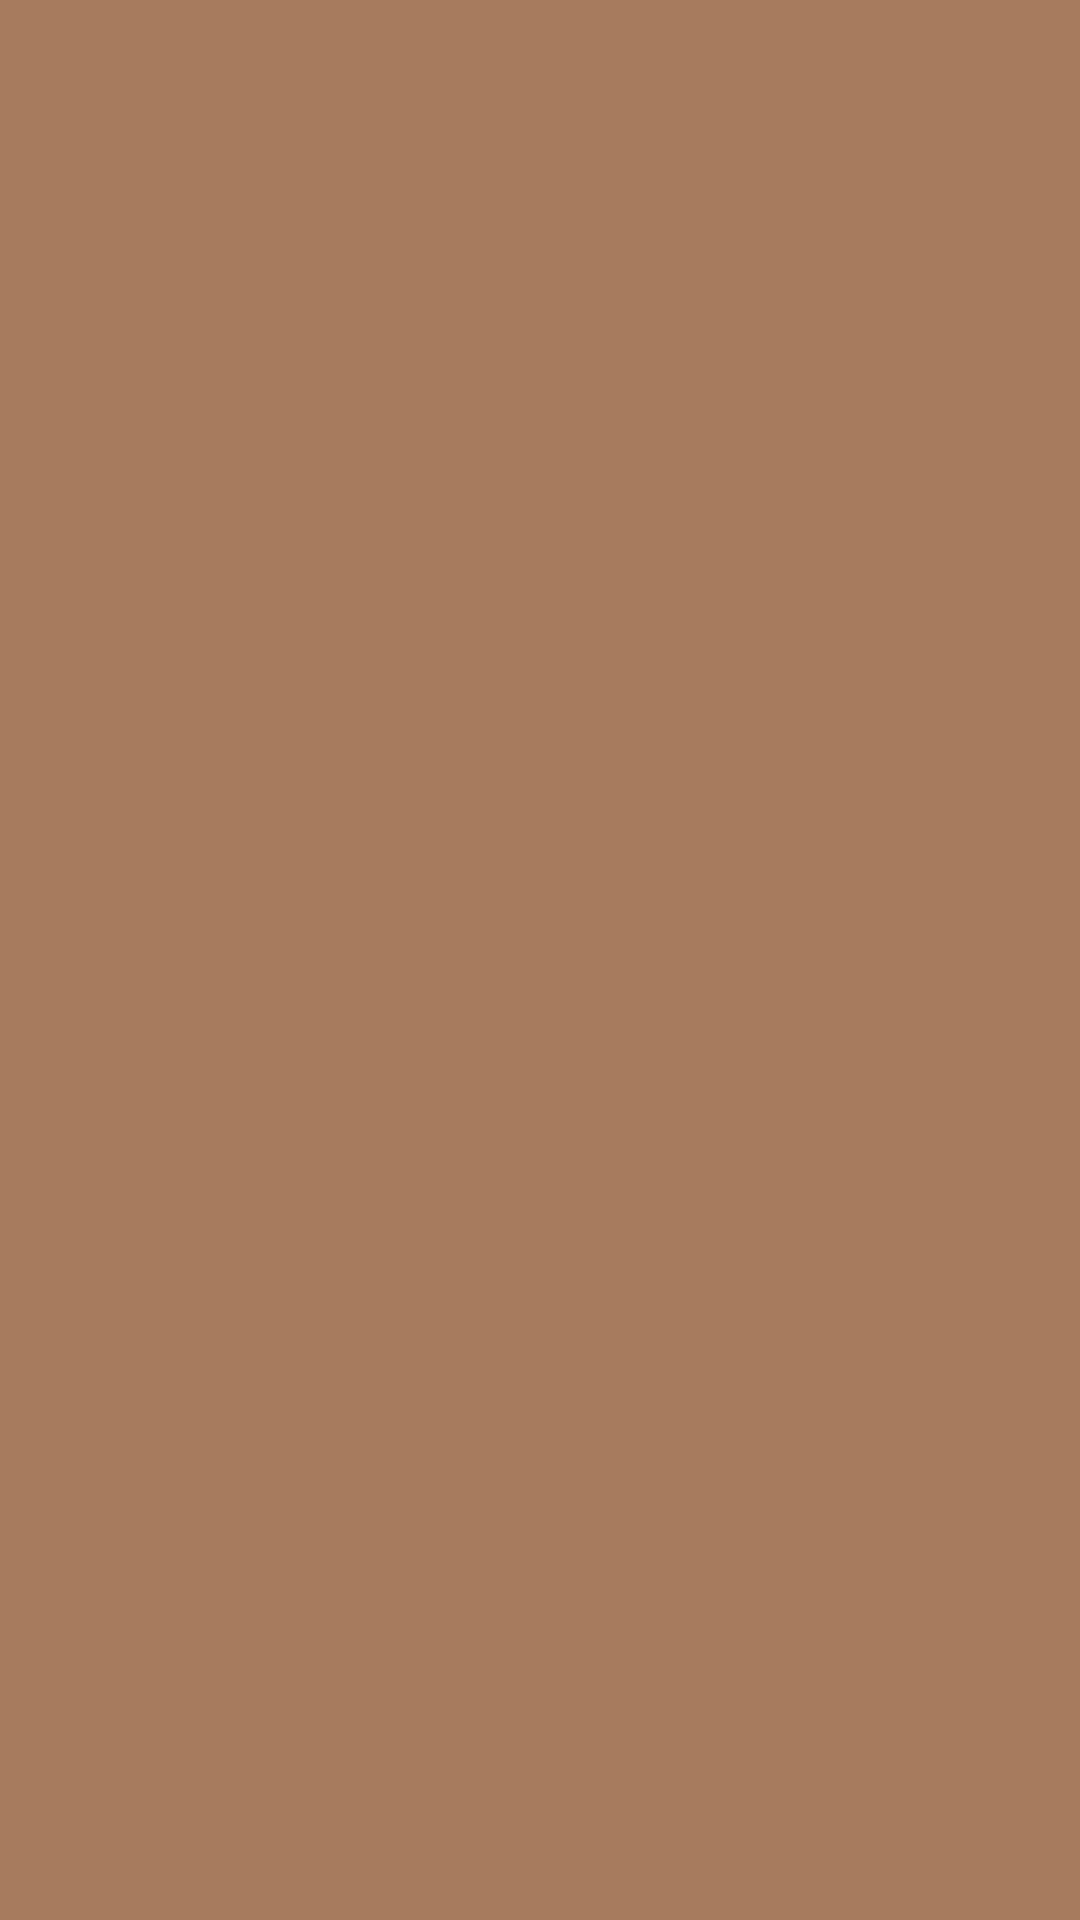 1080x1920 French Beige Solid Color Background